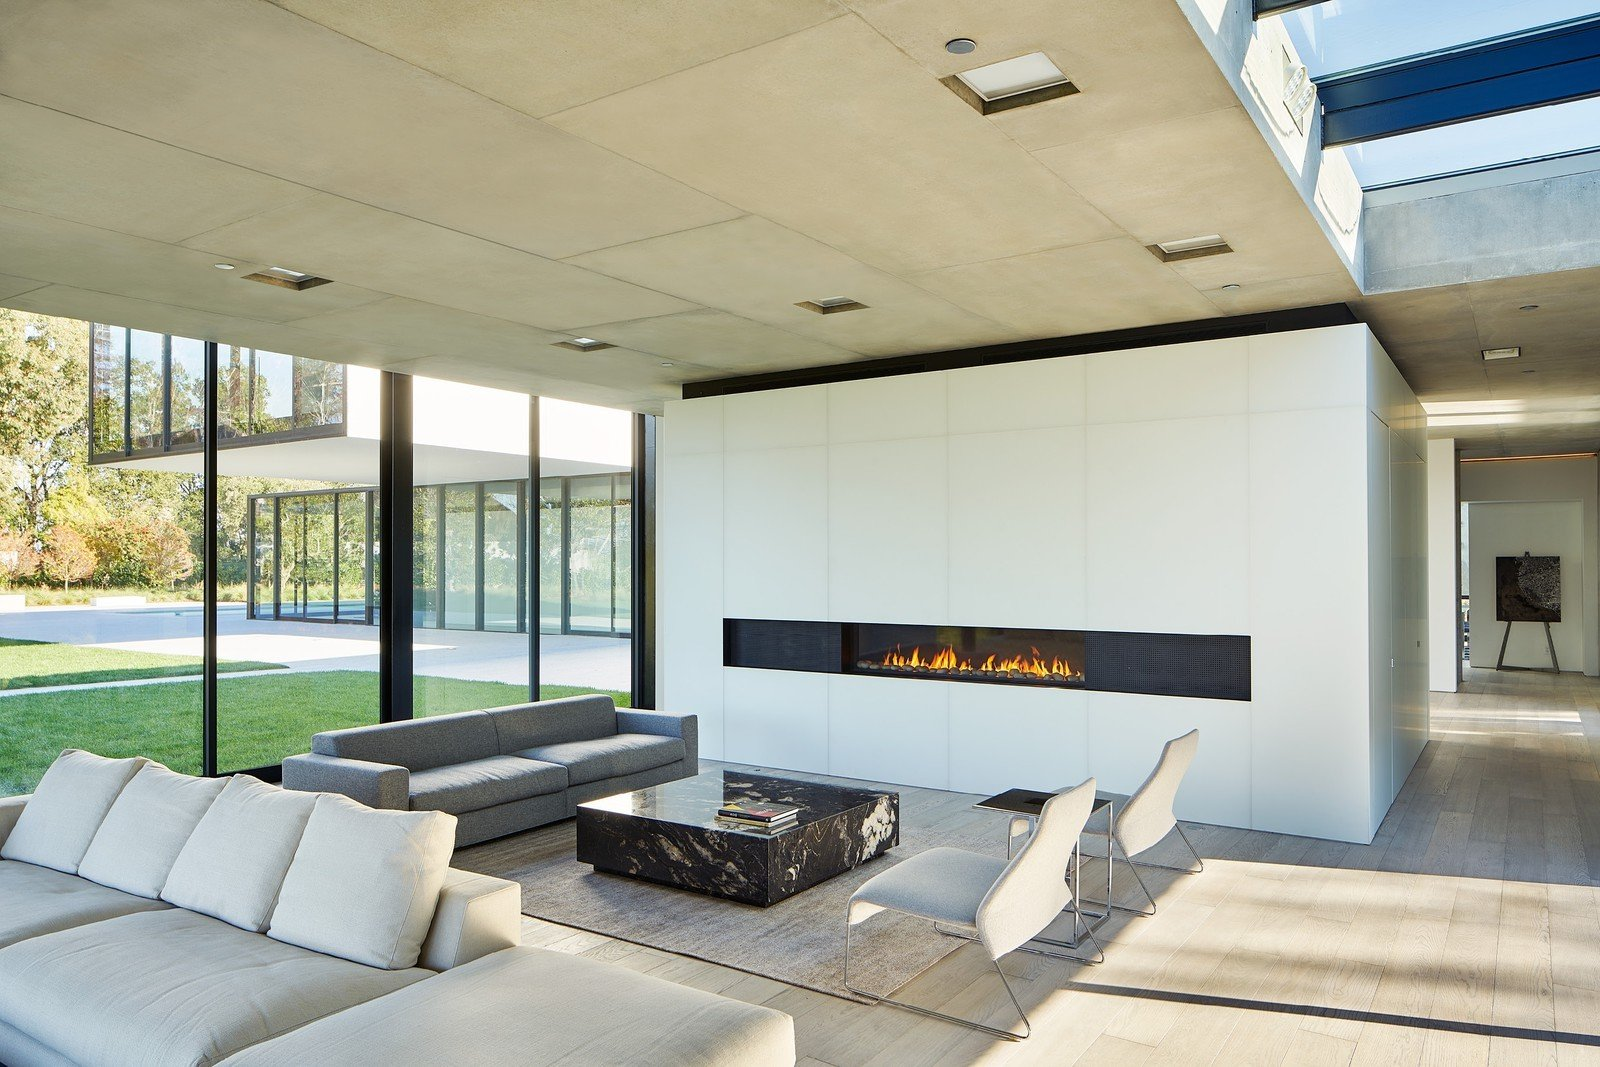 Tagged: Living Room, Gas Burning Fireplace, Ceiling Lighting, Sofa, and Light Hardwood Floor. OZ Residence by Leibal